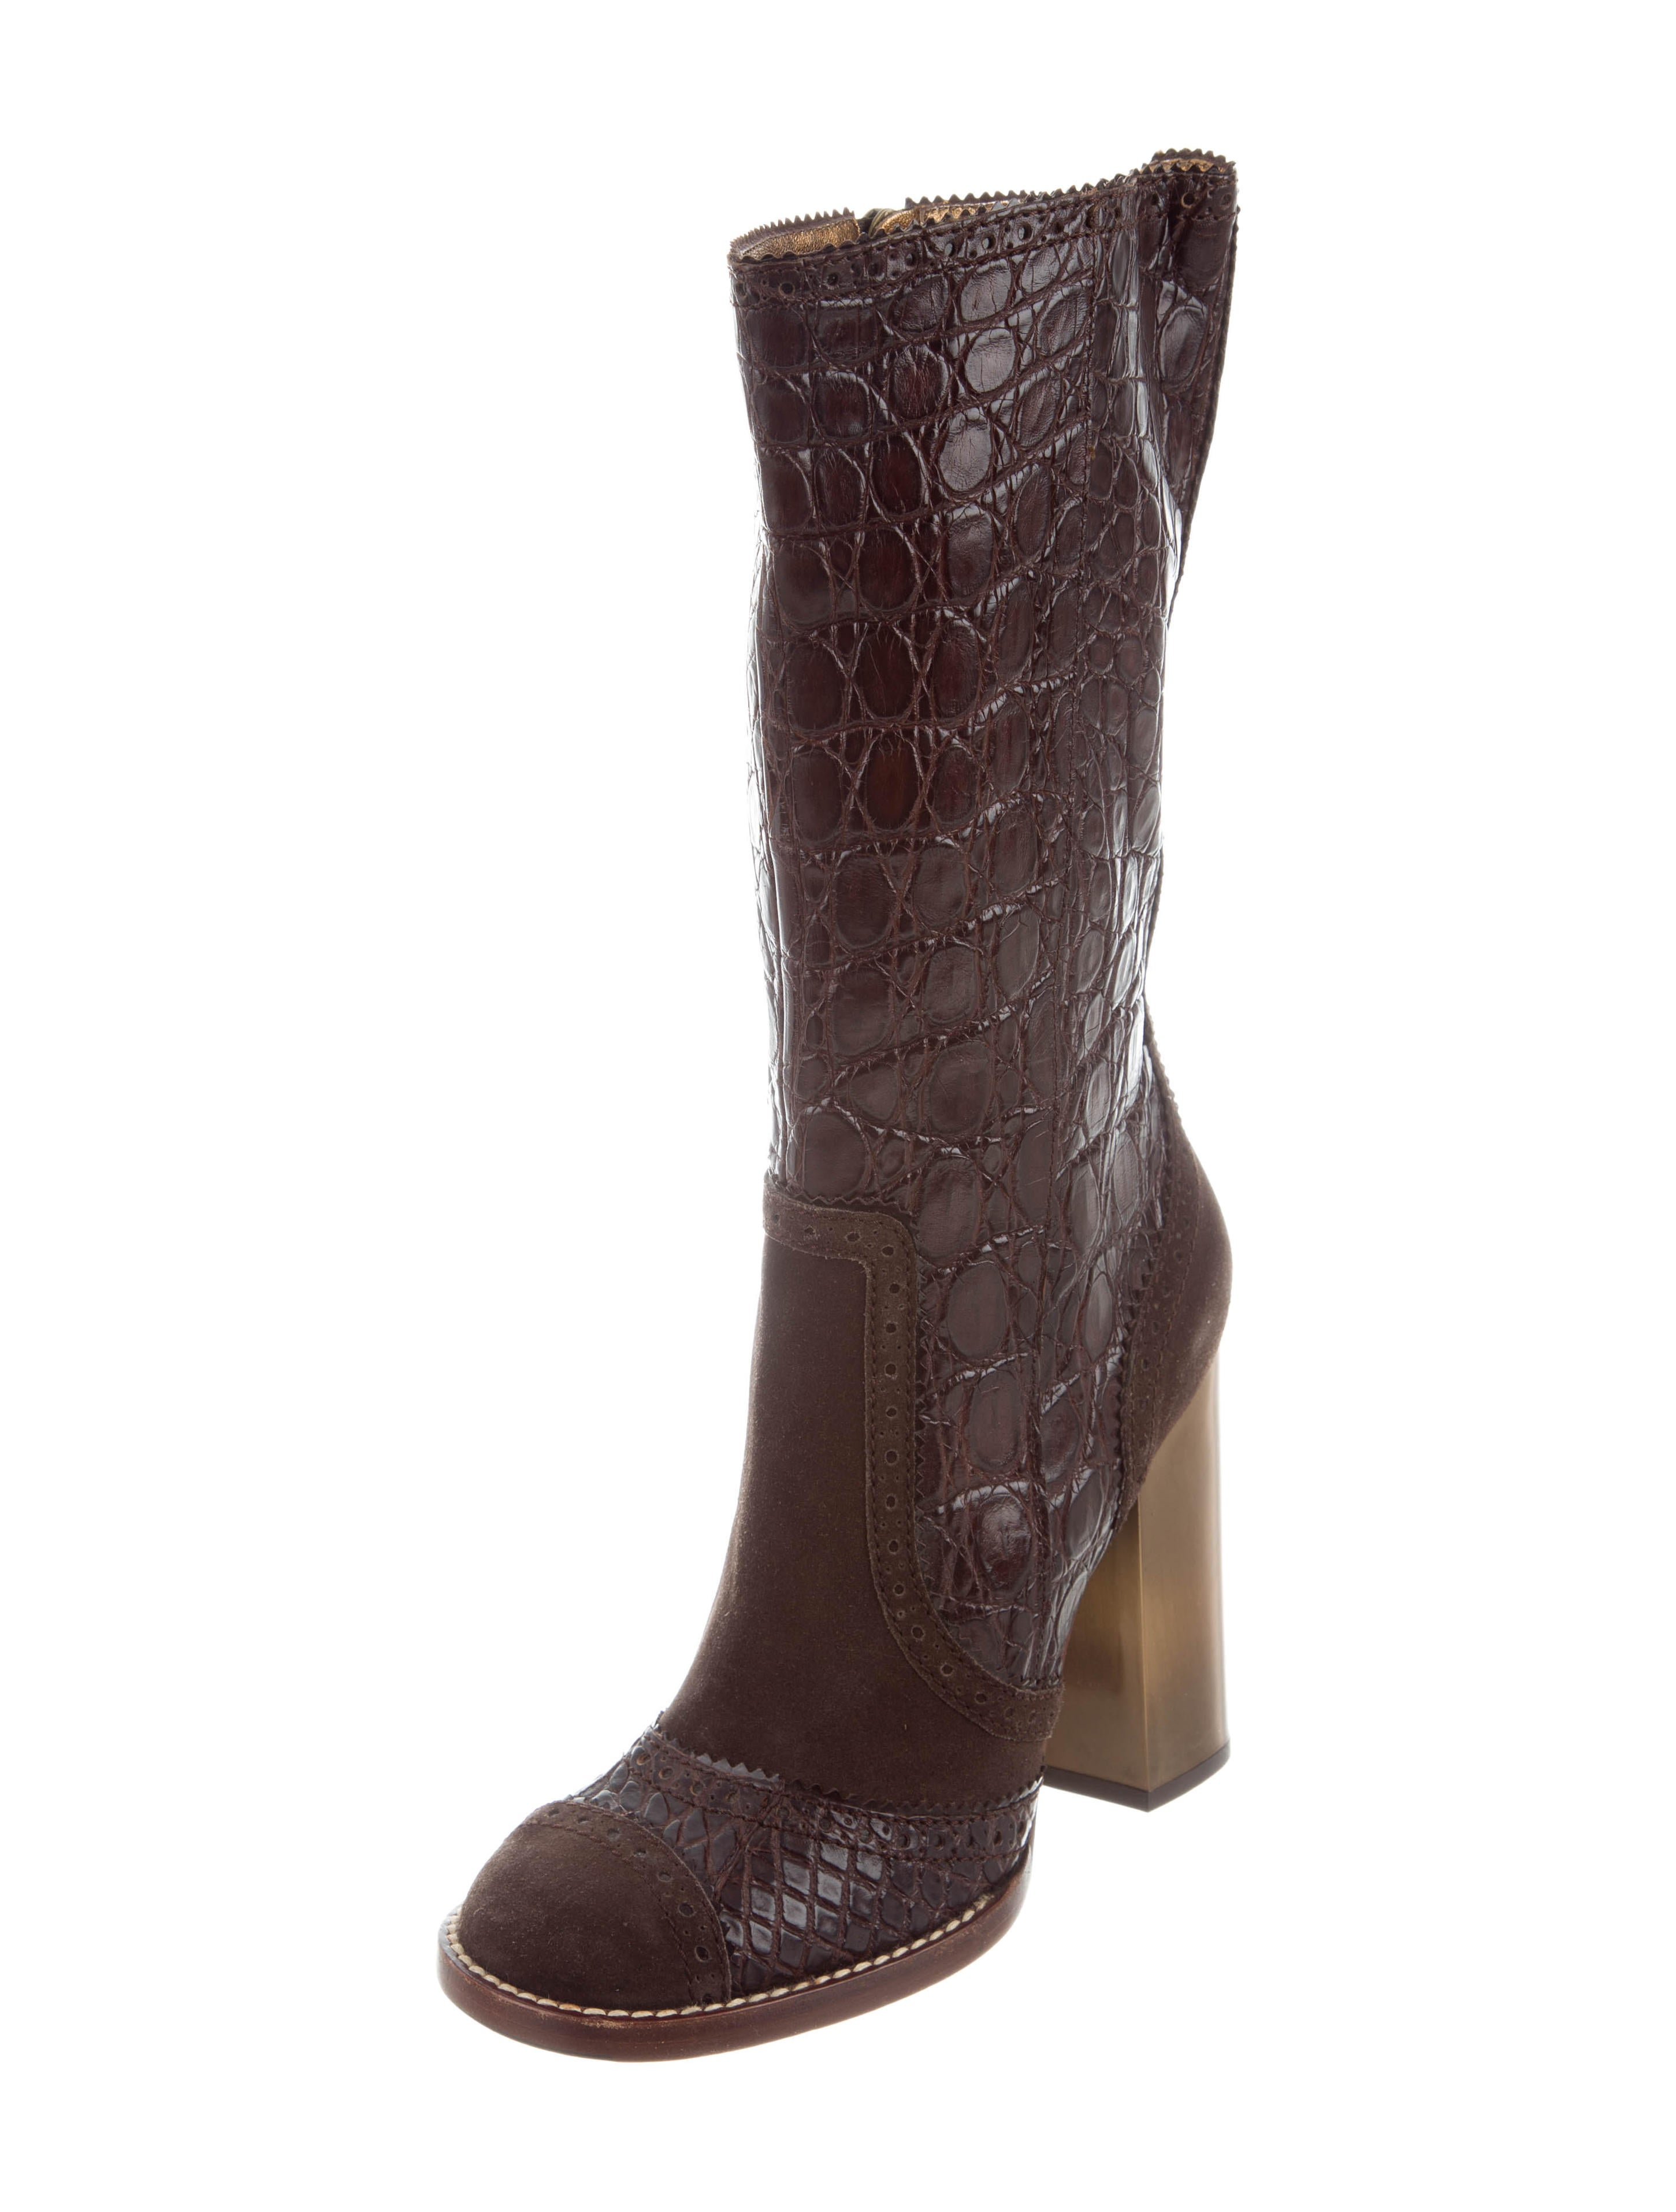 outlet pick a best D&G Crocodile Mid-Calf Boots outlet 2014 newest clearance discount z3mASjjmT